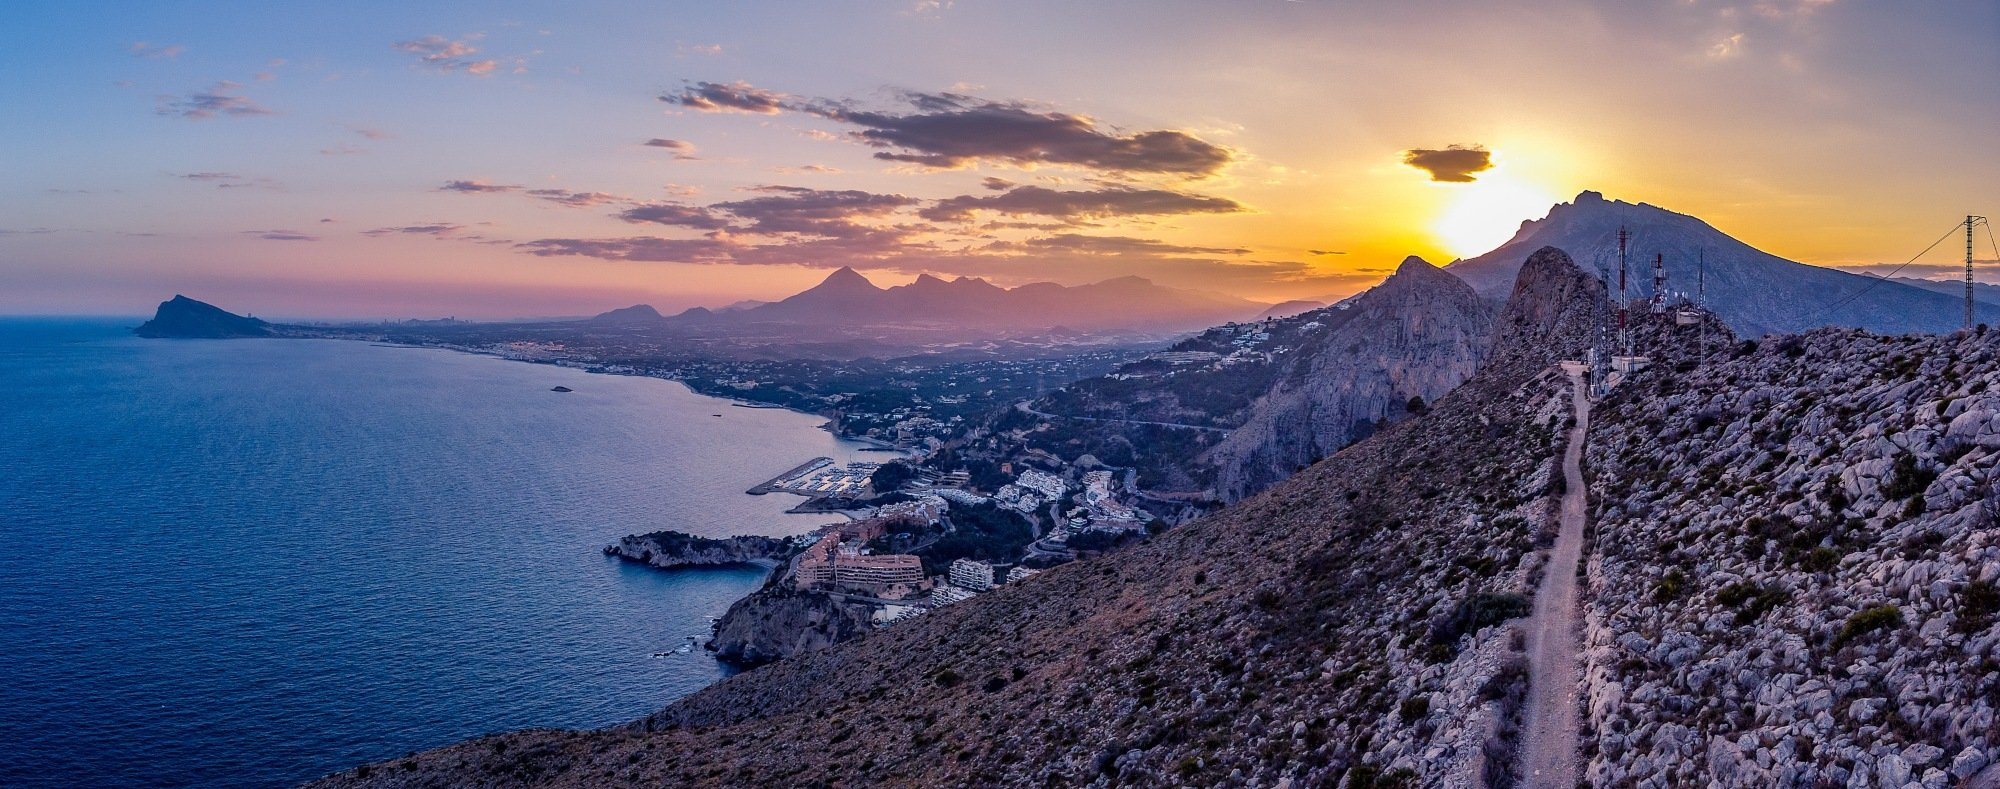 Our favourite cycling holiday destination, number 1 - Calpe